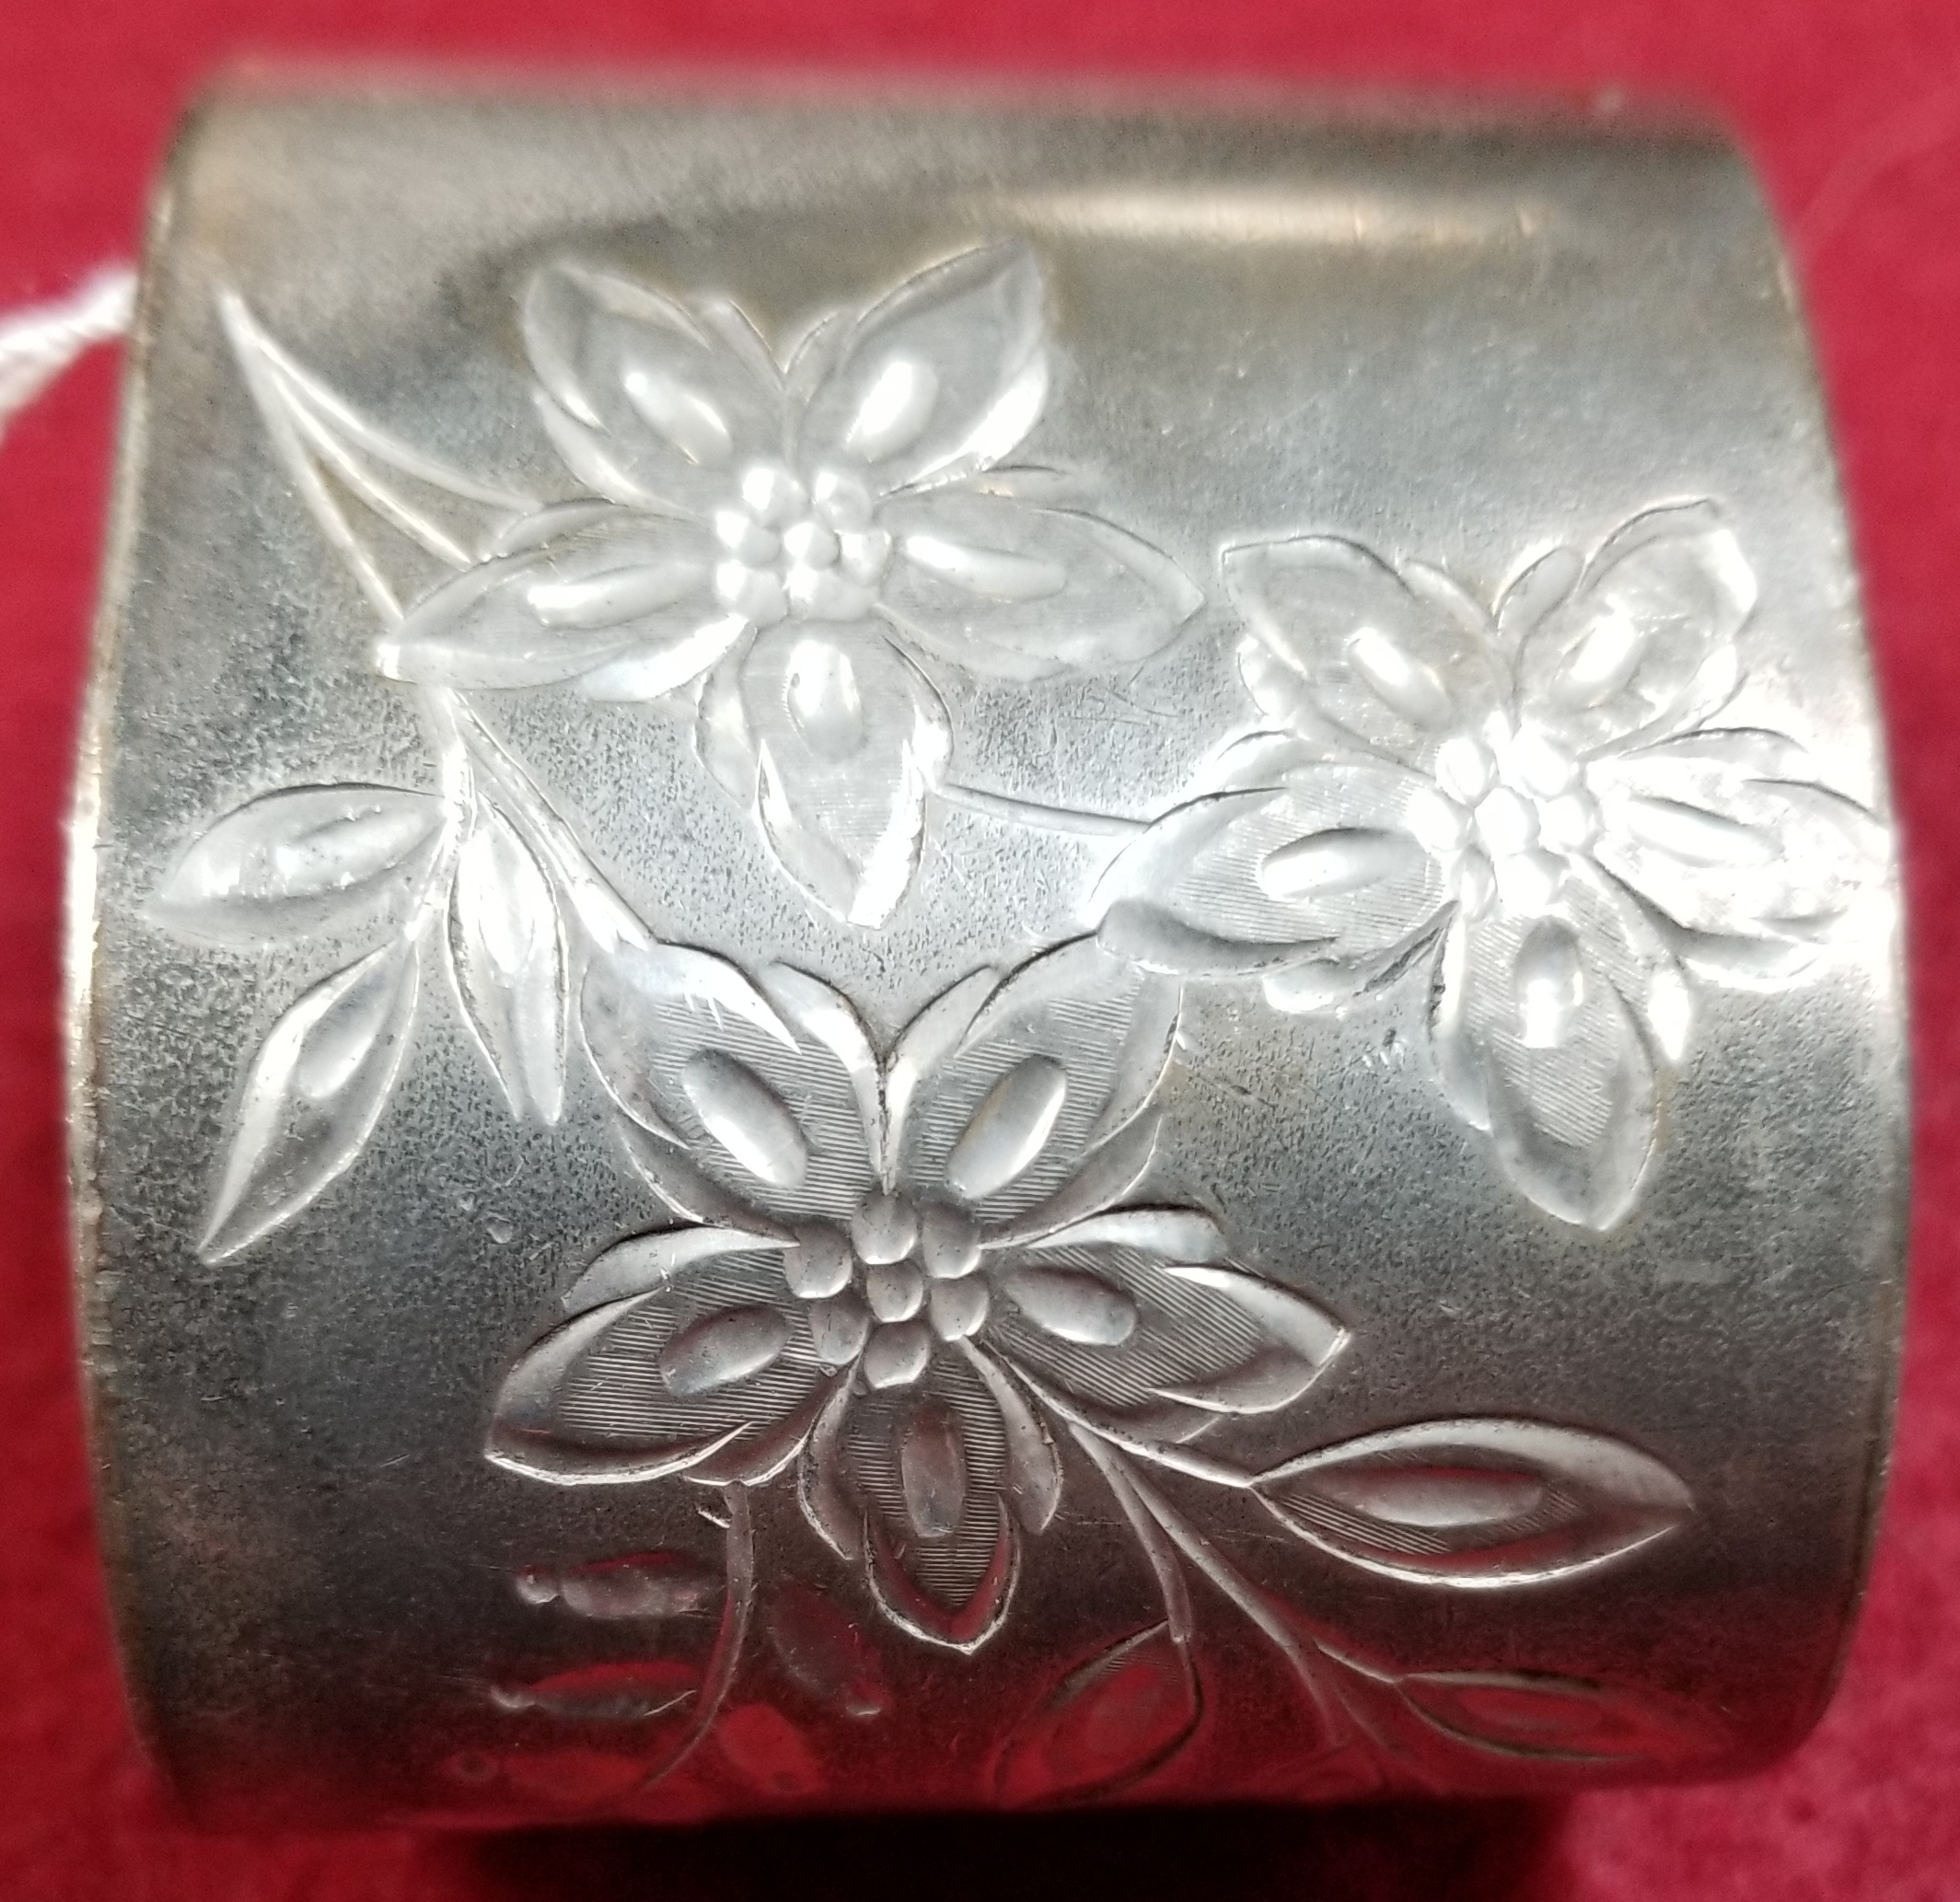 COLLECTIBLE: SILVER NAPKIN RING W/ FLOWER DESIGNS